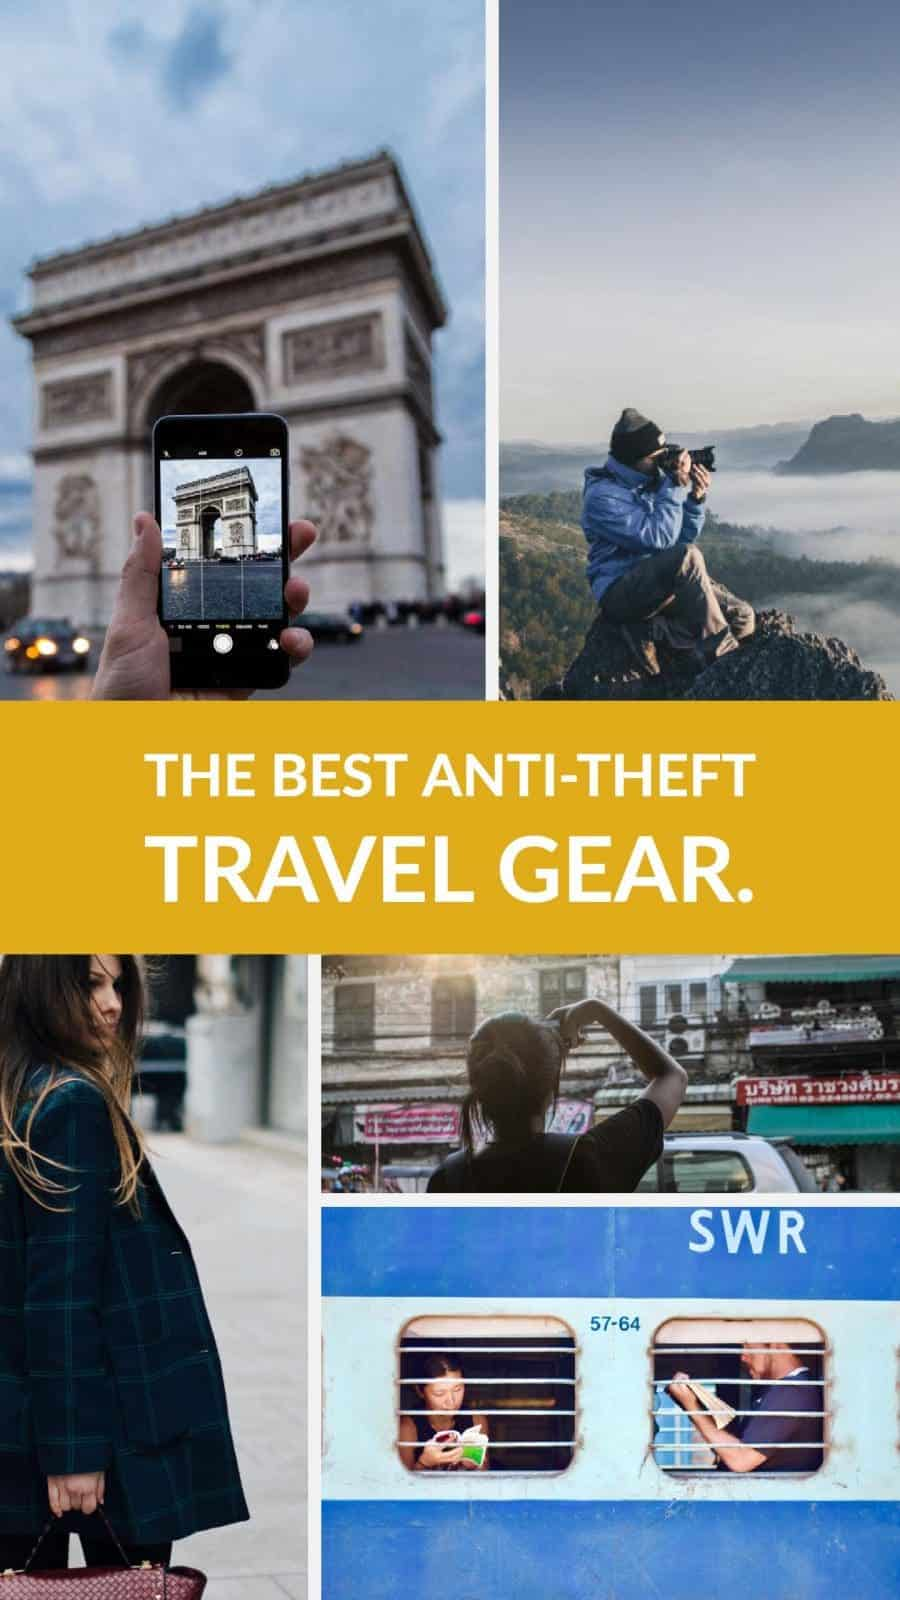 A complete guide to the best anti-theft travel gear and devices on the market as well as some tips for avoiding becoming a victim of theft while you travel.